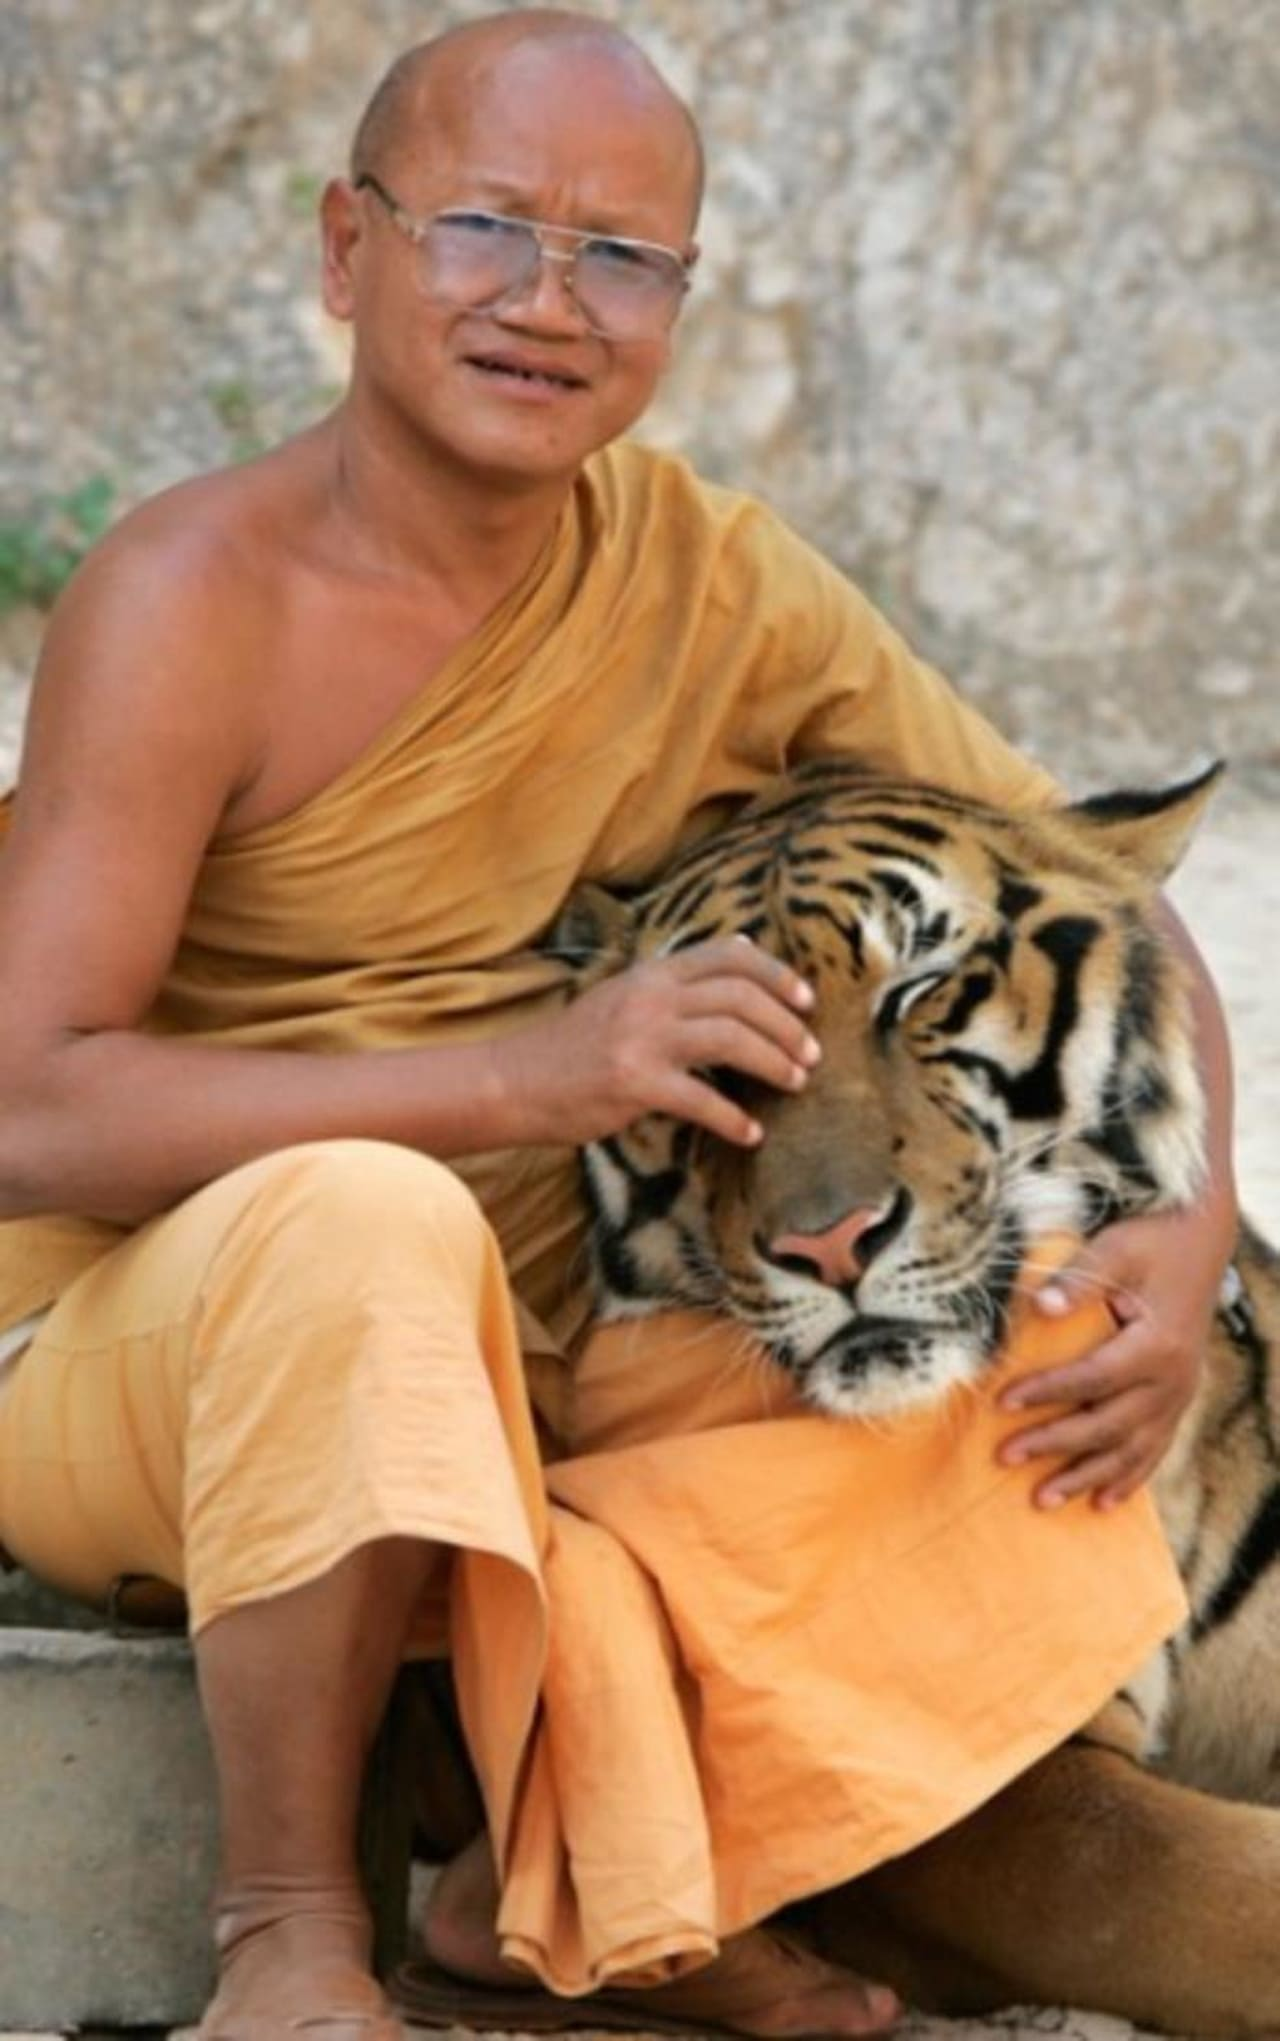 The Tiger and the Monk (2007)